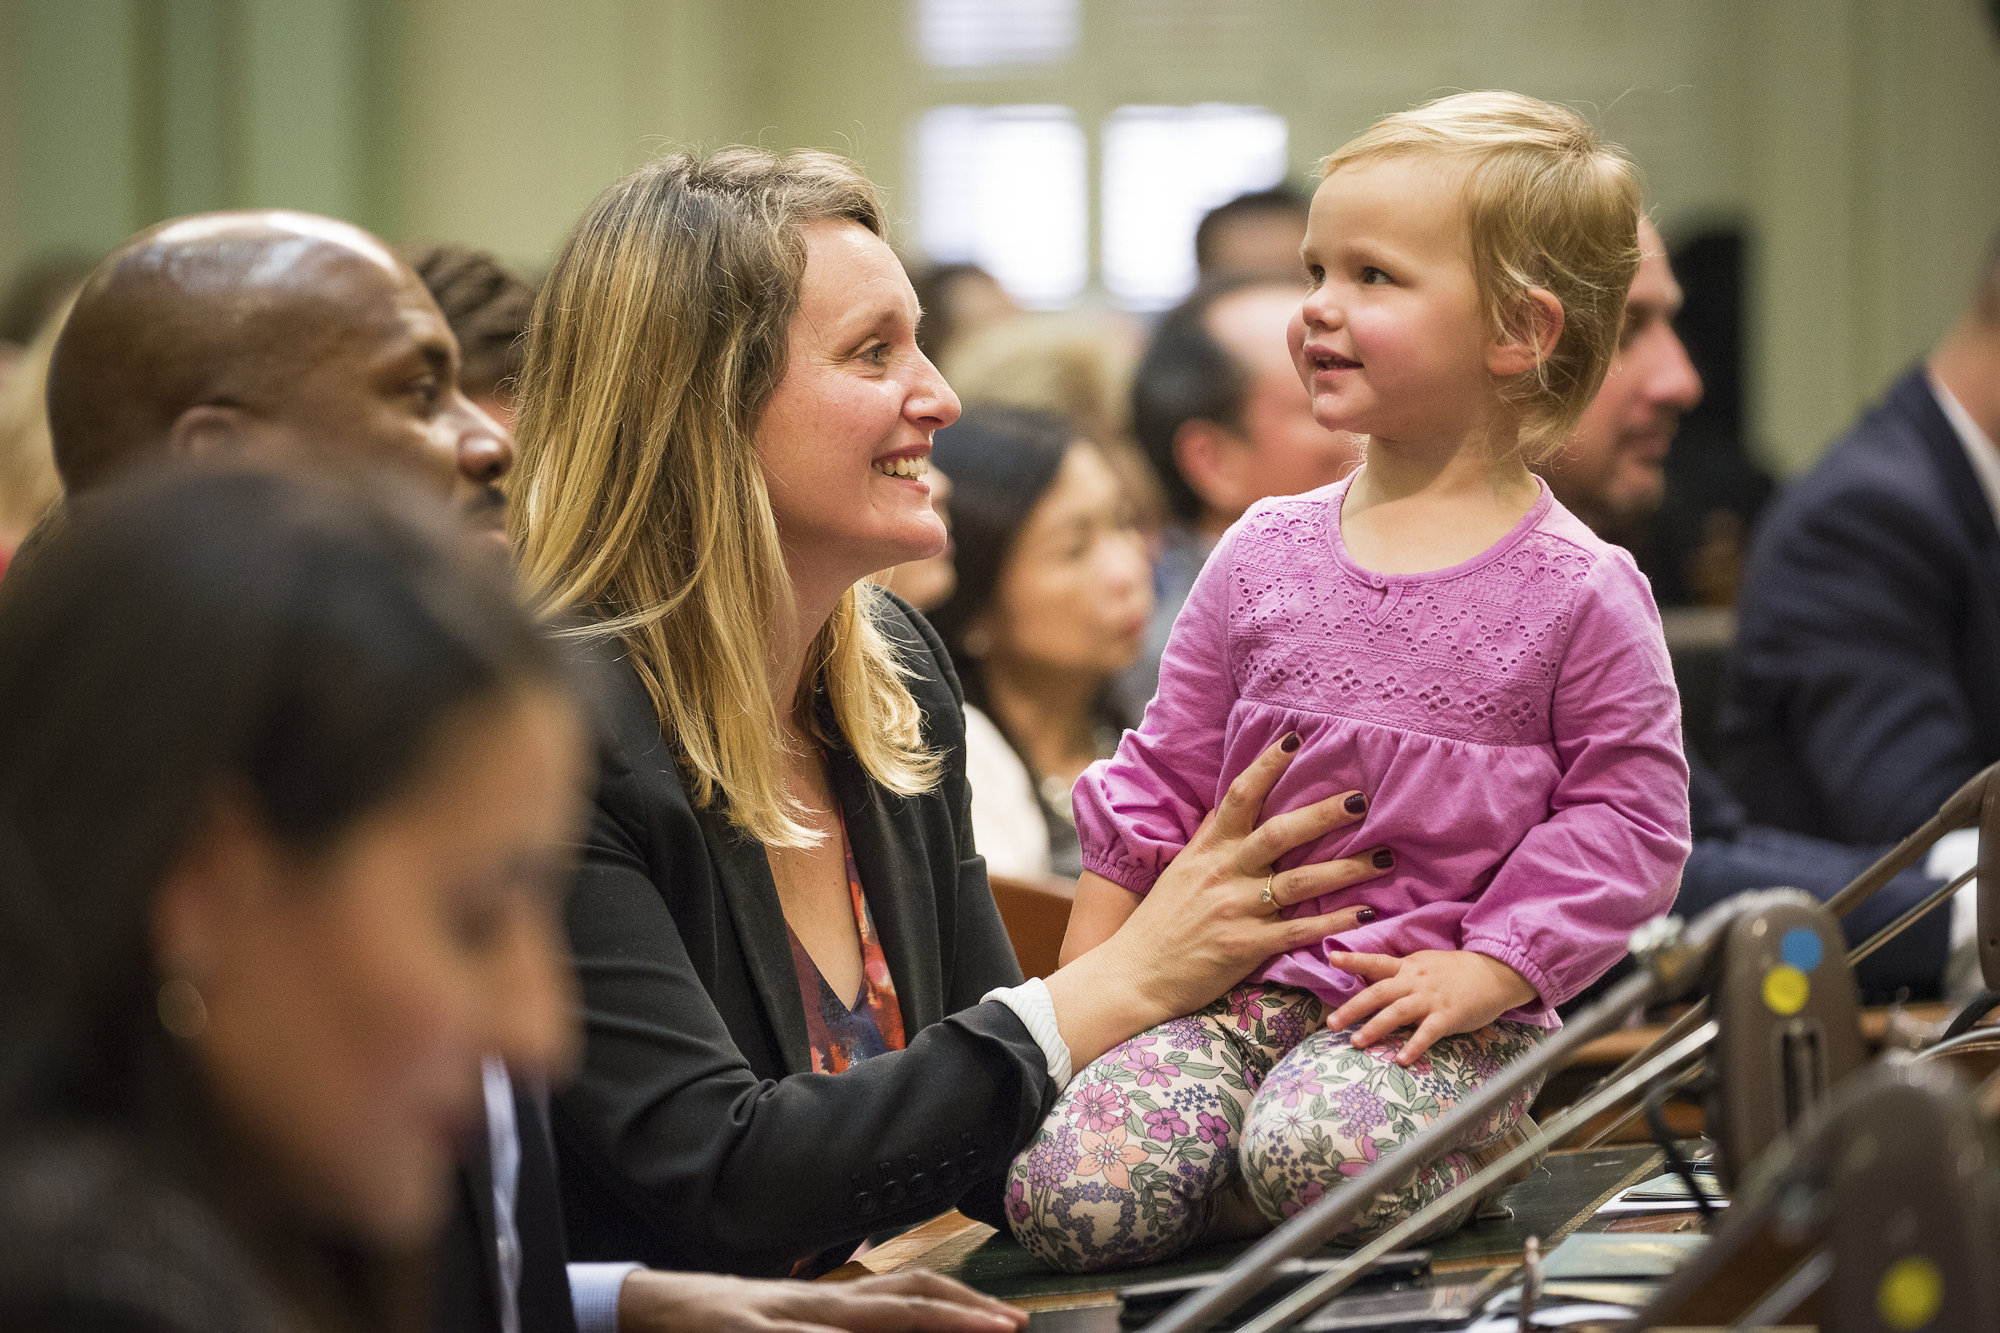 Assemblymember Buffy Wicks plays with her two-year-old daughter, Josephine Ambler, on her desk after being sworn into the California Assembly, December 3, 2018 at the State Capitol in Sacramento, California. Photo by Max Whittaker for CalMatters